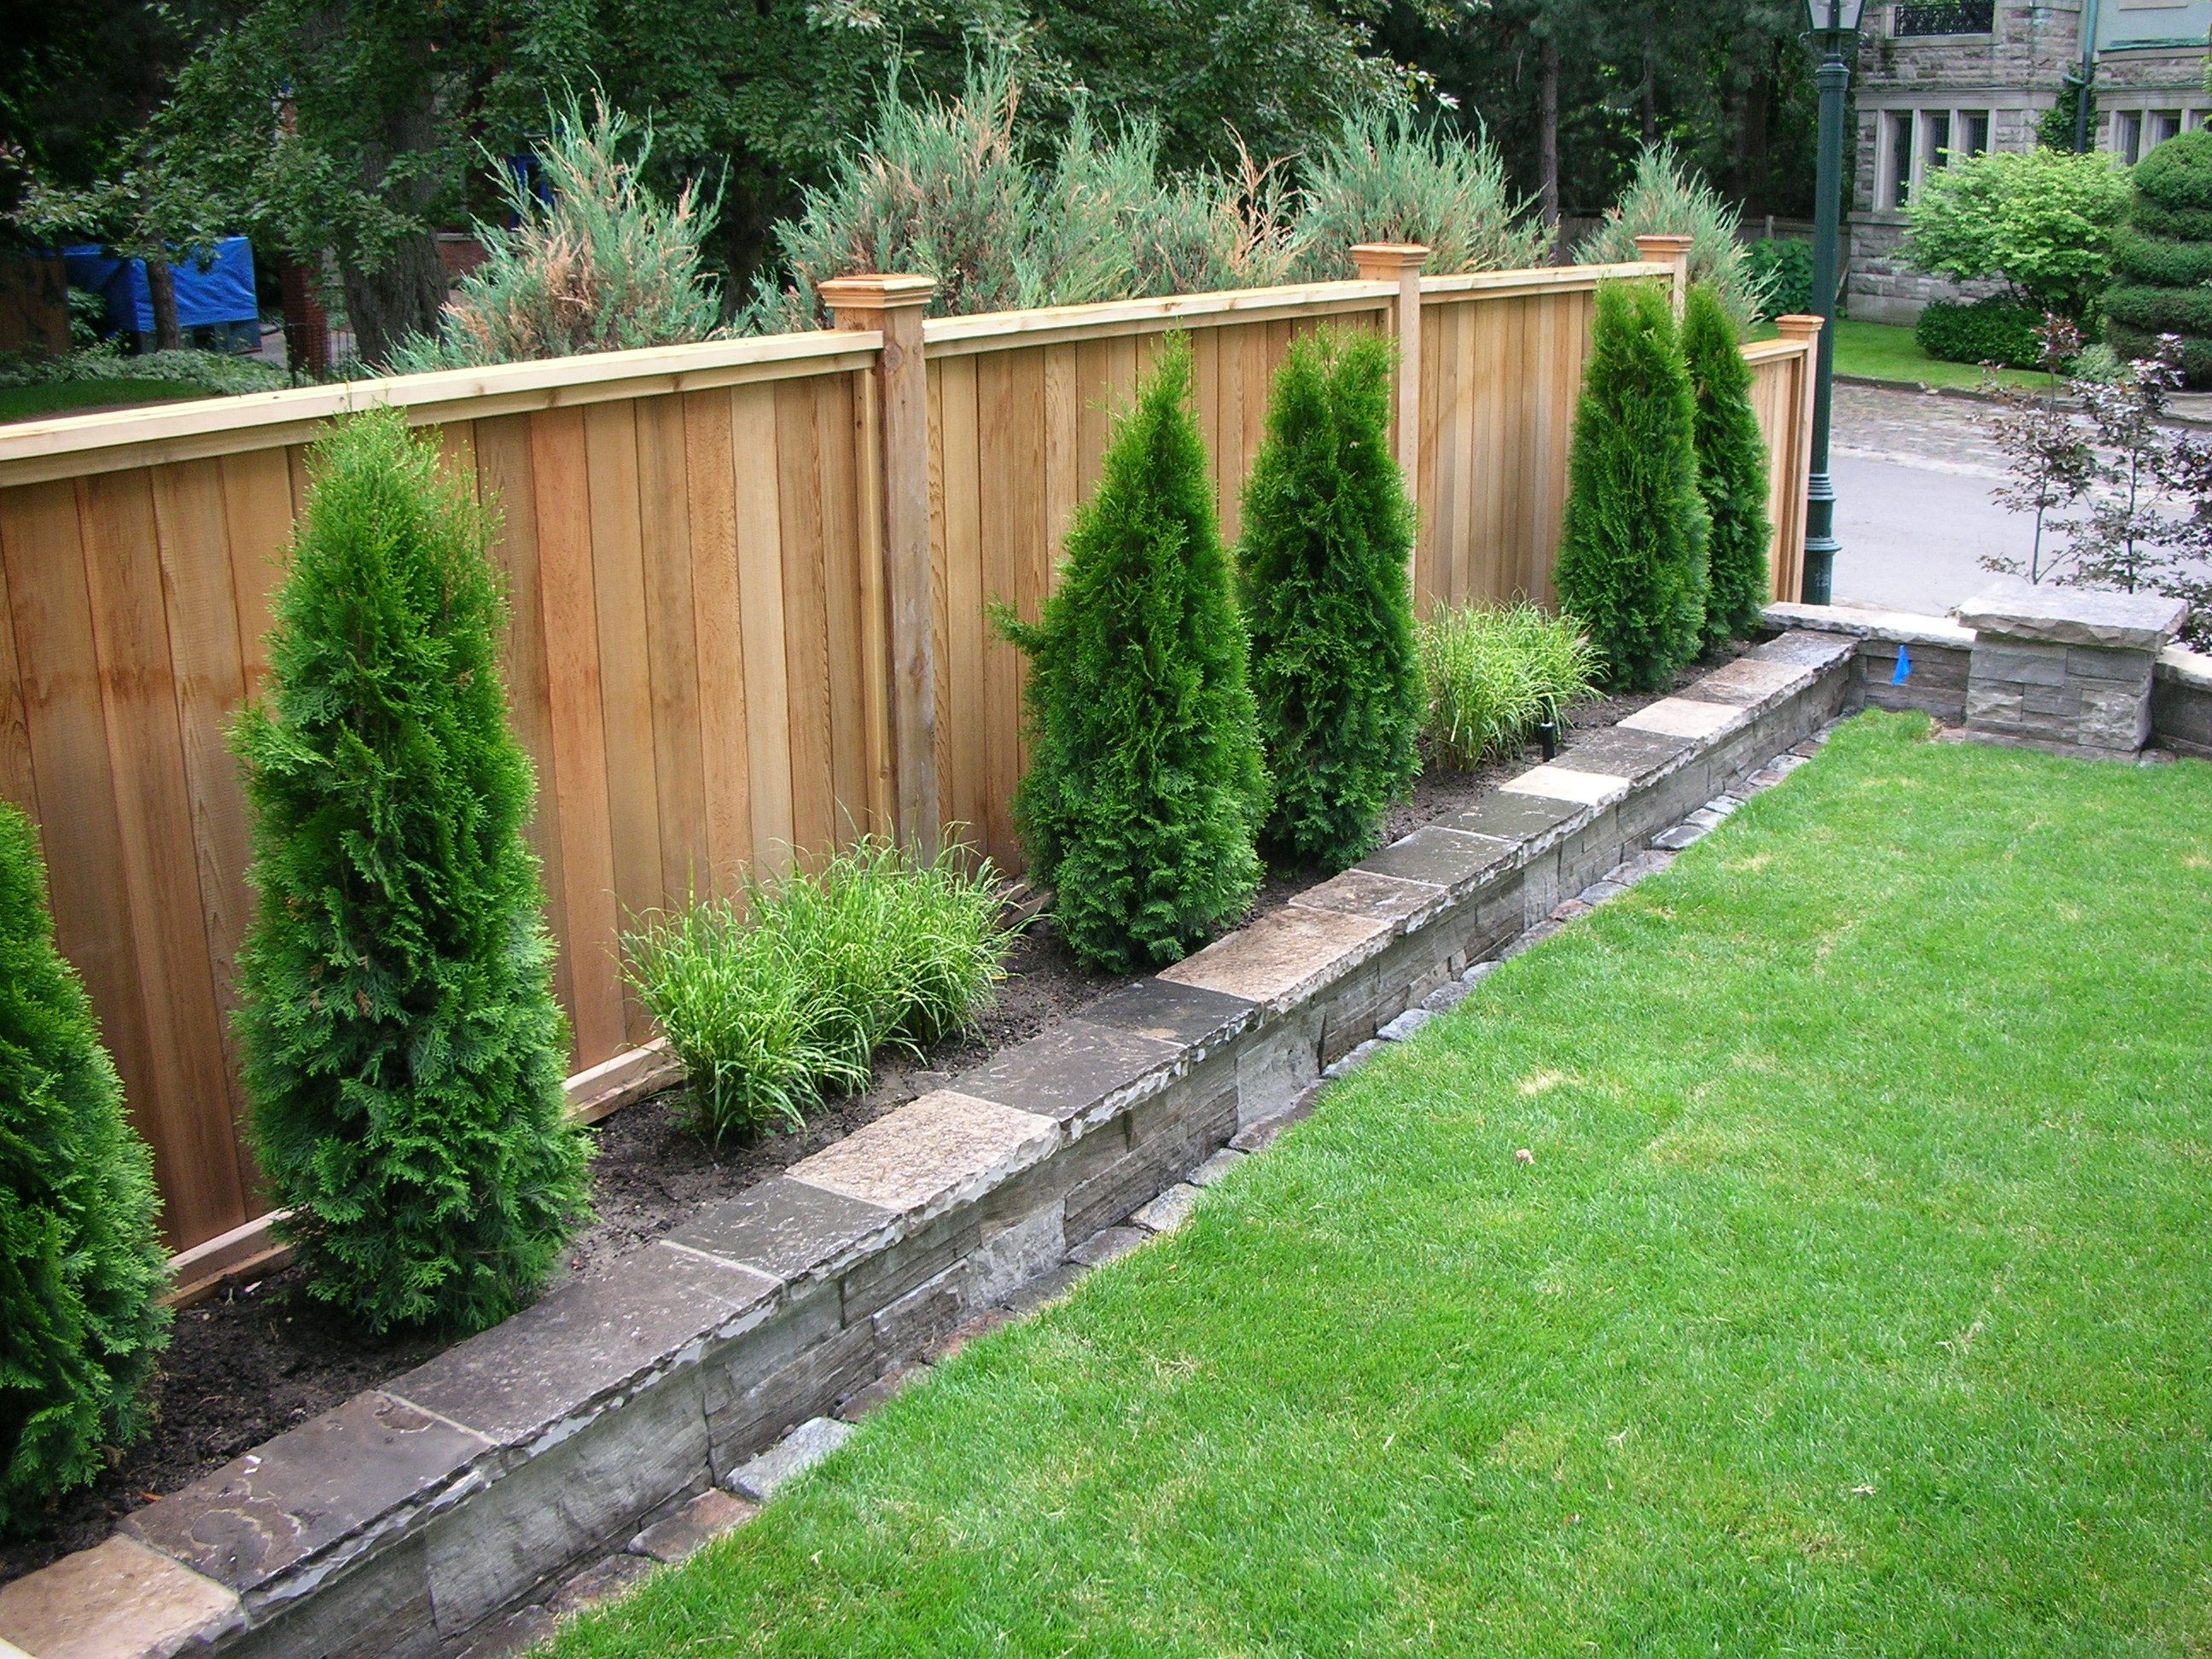 backyard fencing privacy fence fence sod irrigation system stone